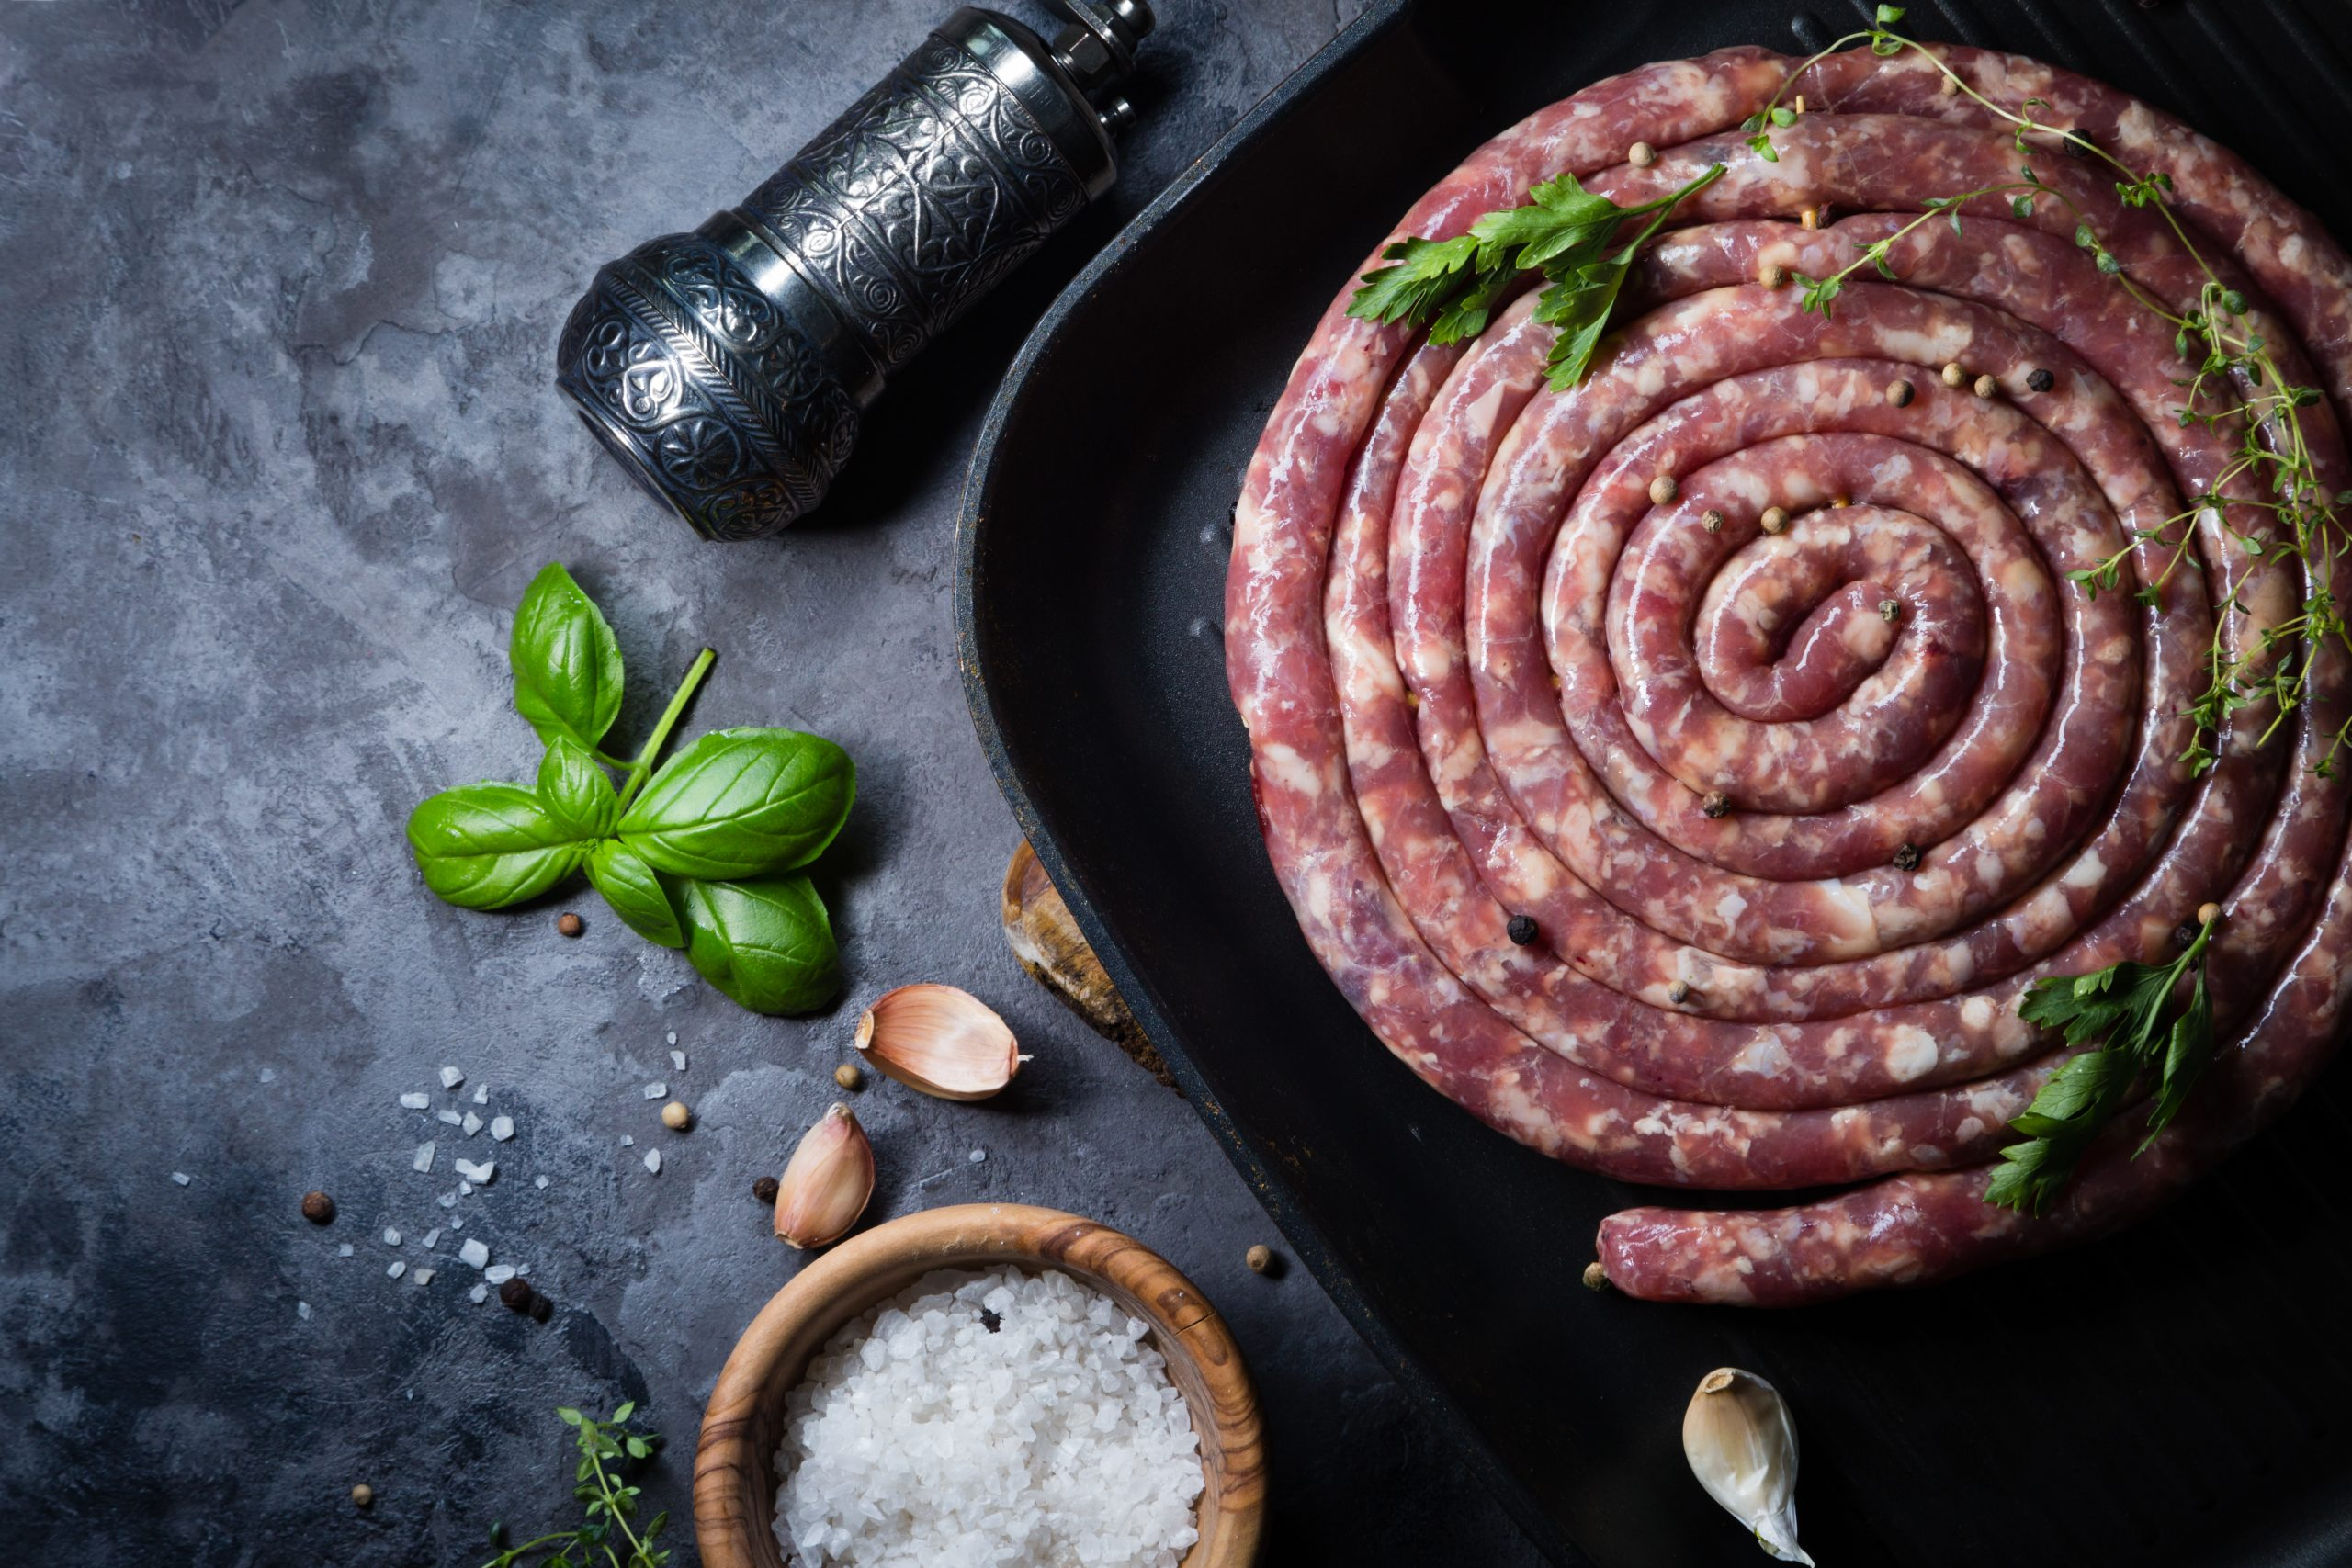 BOEREWORS CHEESE (THIN ALSO) – 500g